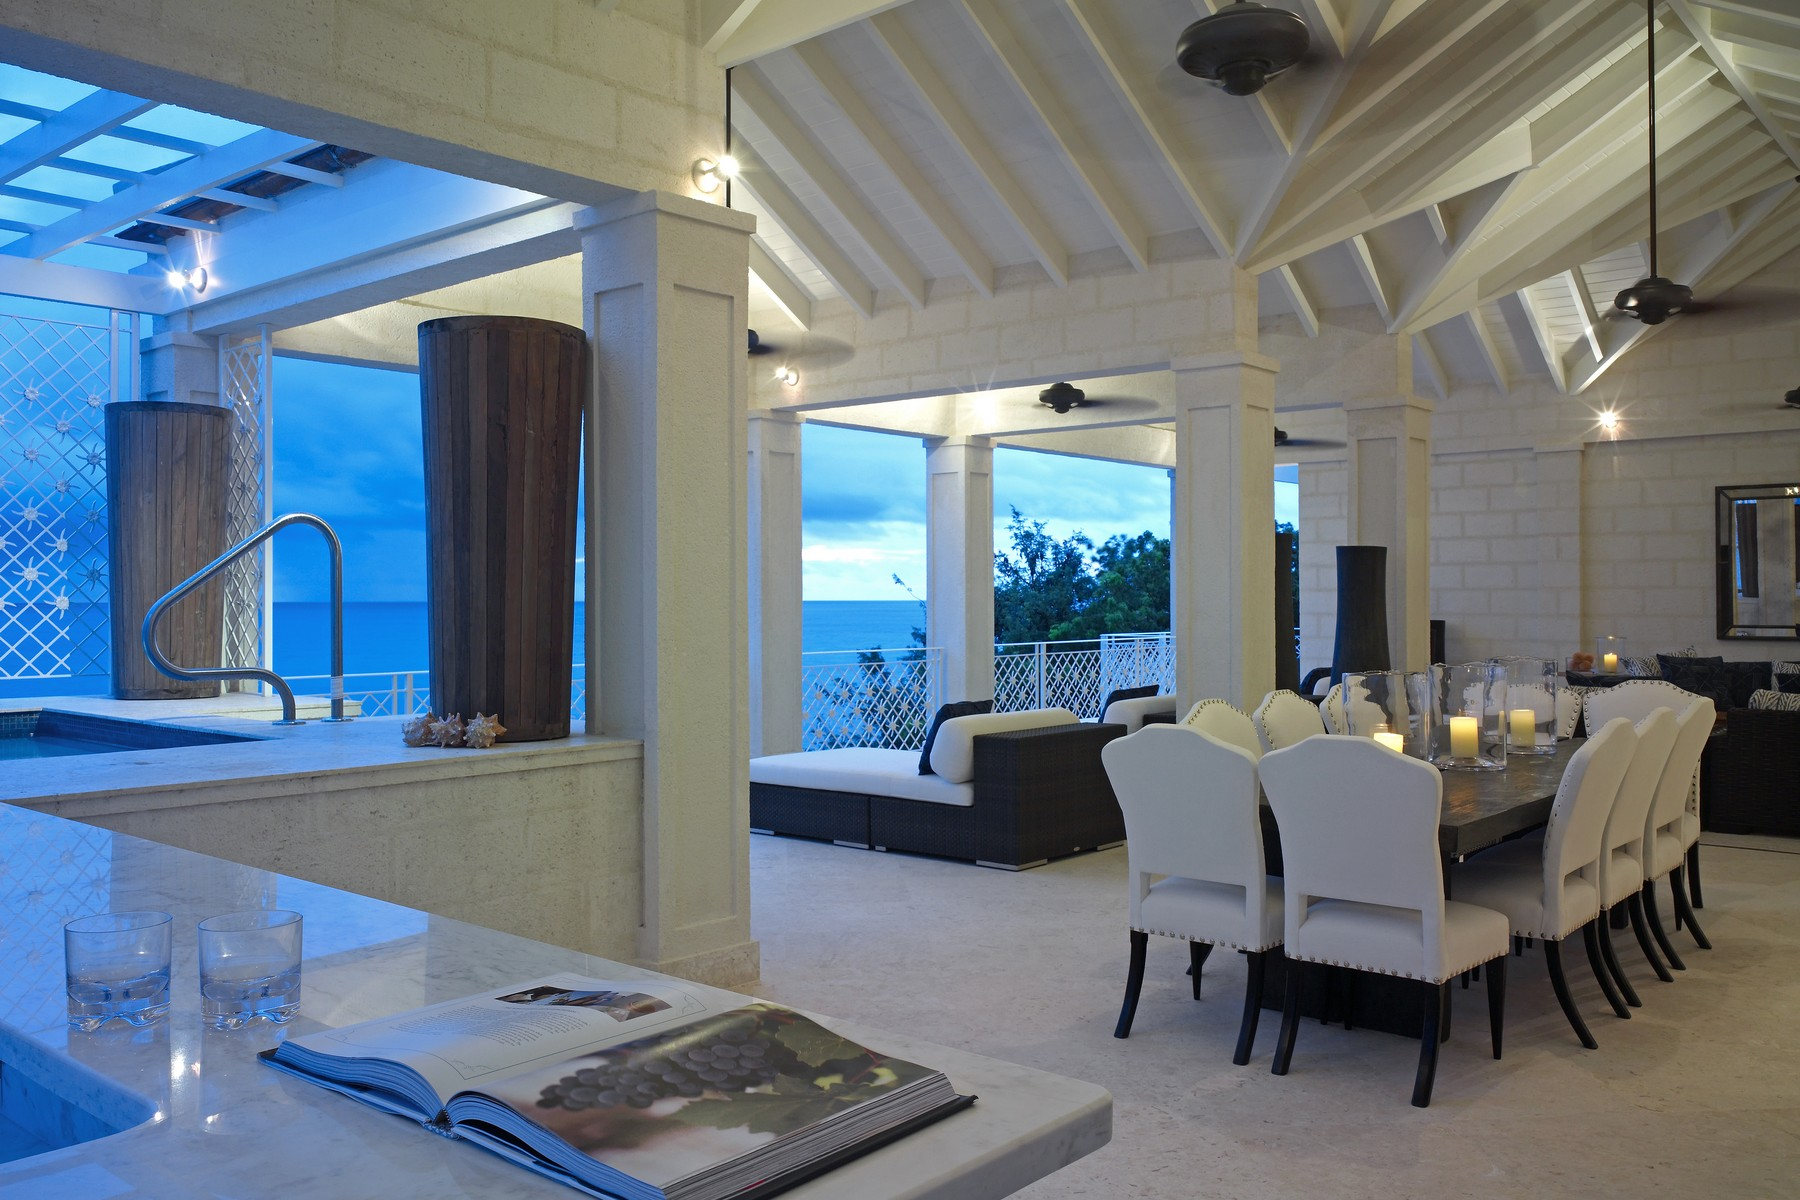 Other Residential for Sale at Smugglers 6 Other Saint James, Saint James, Barbados